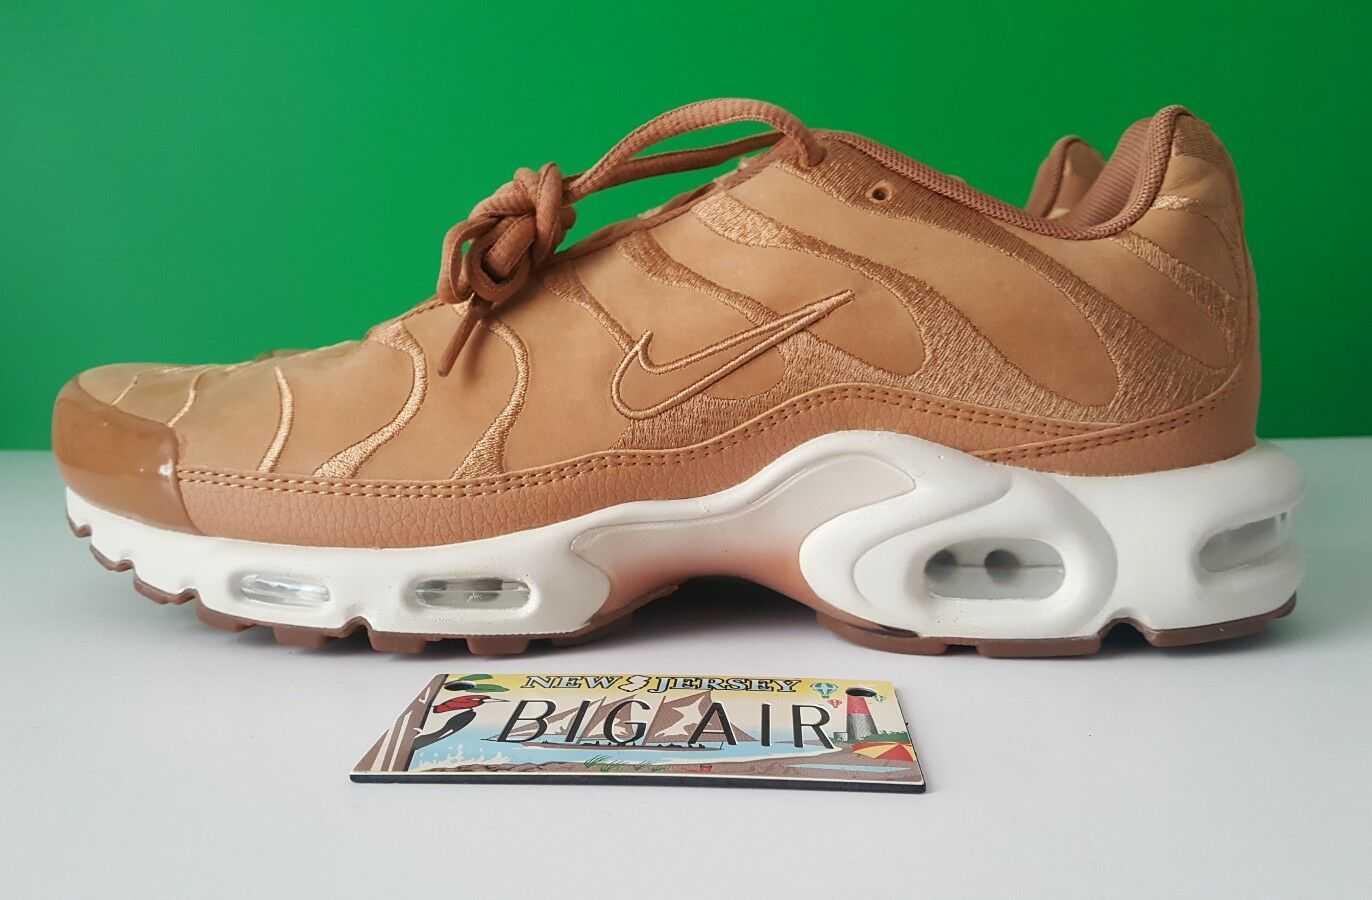 Nike Air Max Plus TN Tuned EF Wheat Flax Suede Sail White Comfortable New shoes for men and women, limited time discount